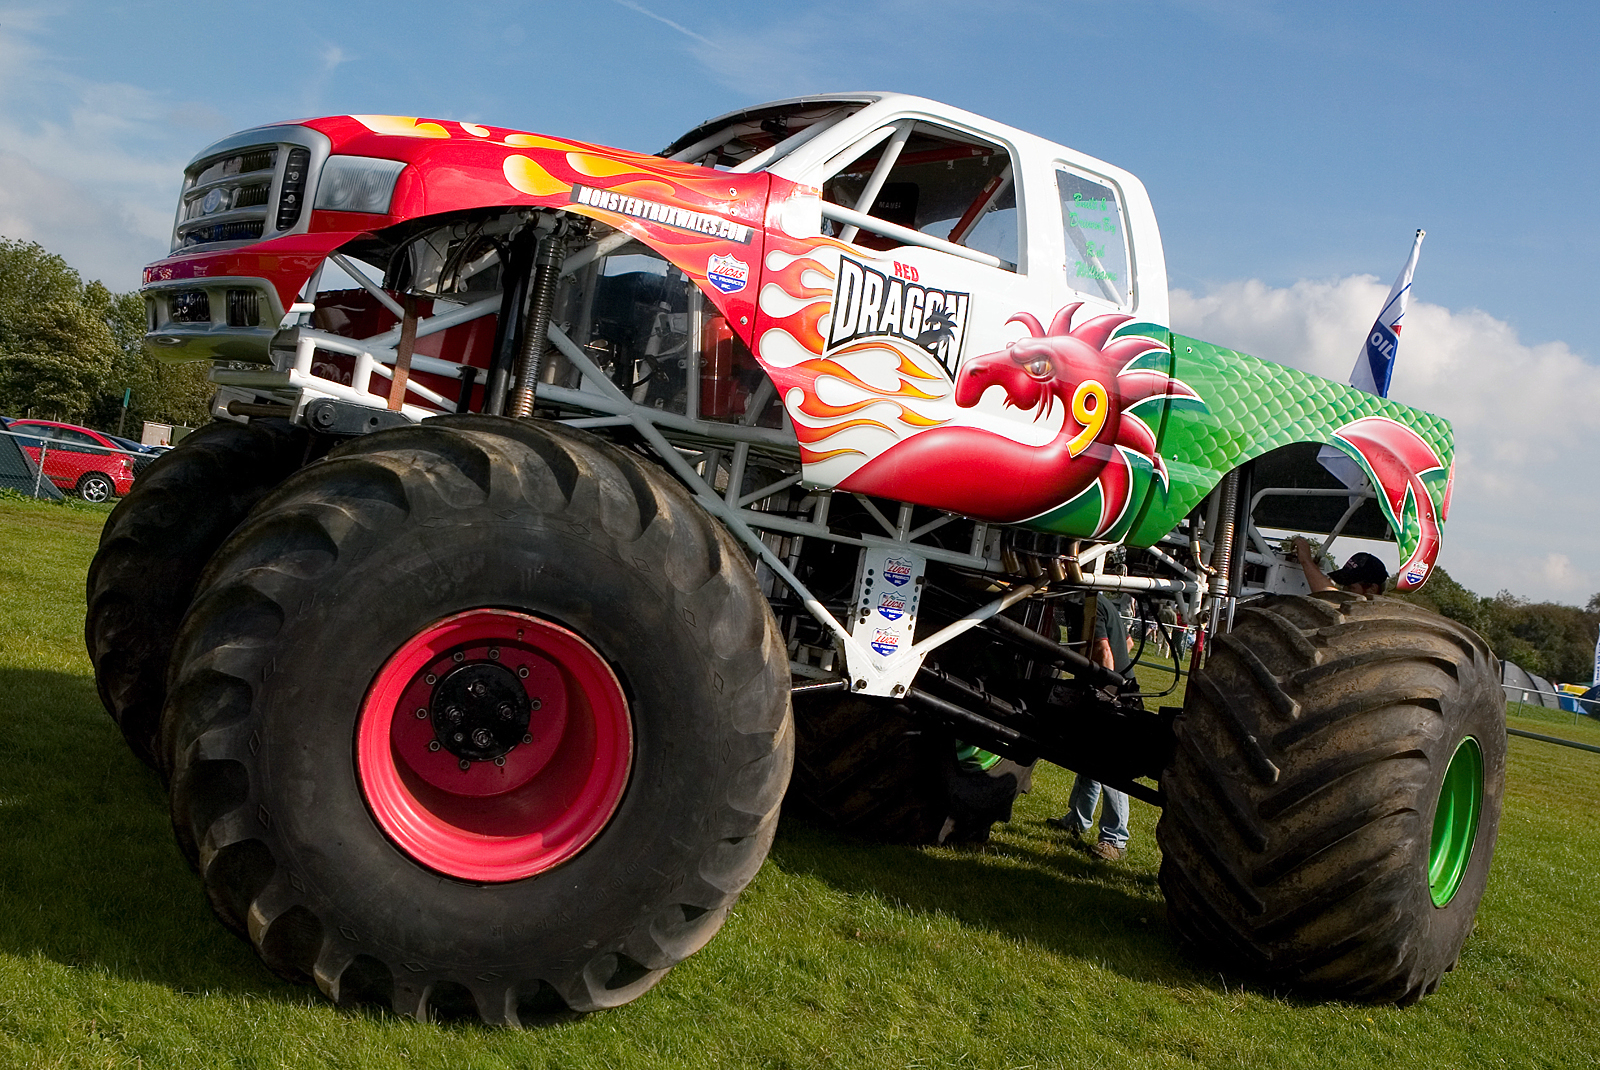 monstertrucks_wallpaper_017_1600_1070.jpg